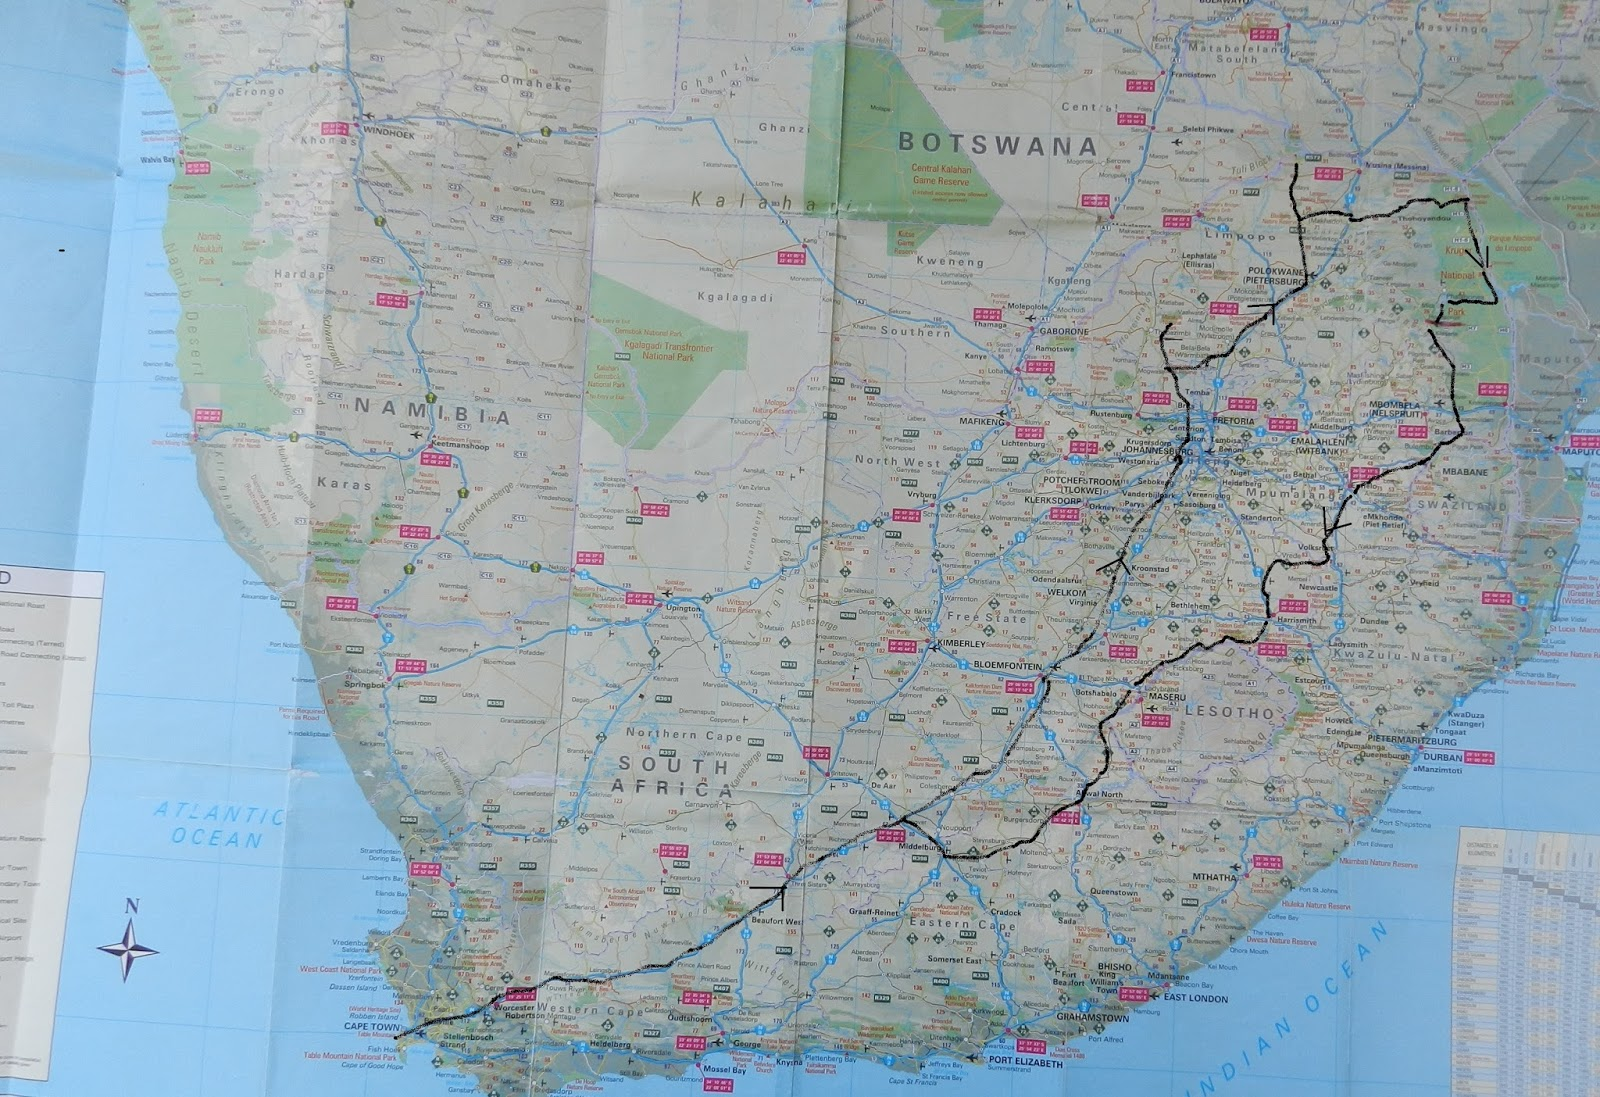 the tour will take us to four national parks karoo np marakele np mapungubwe np and kruger np our travel map looks something like this